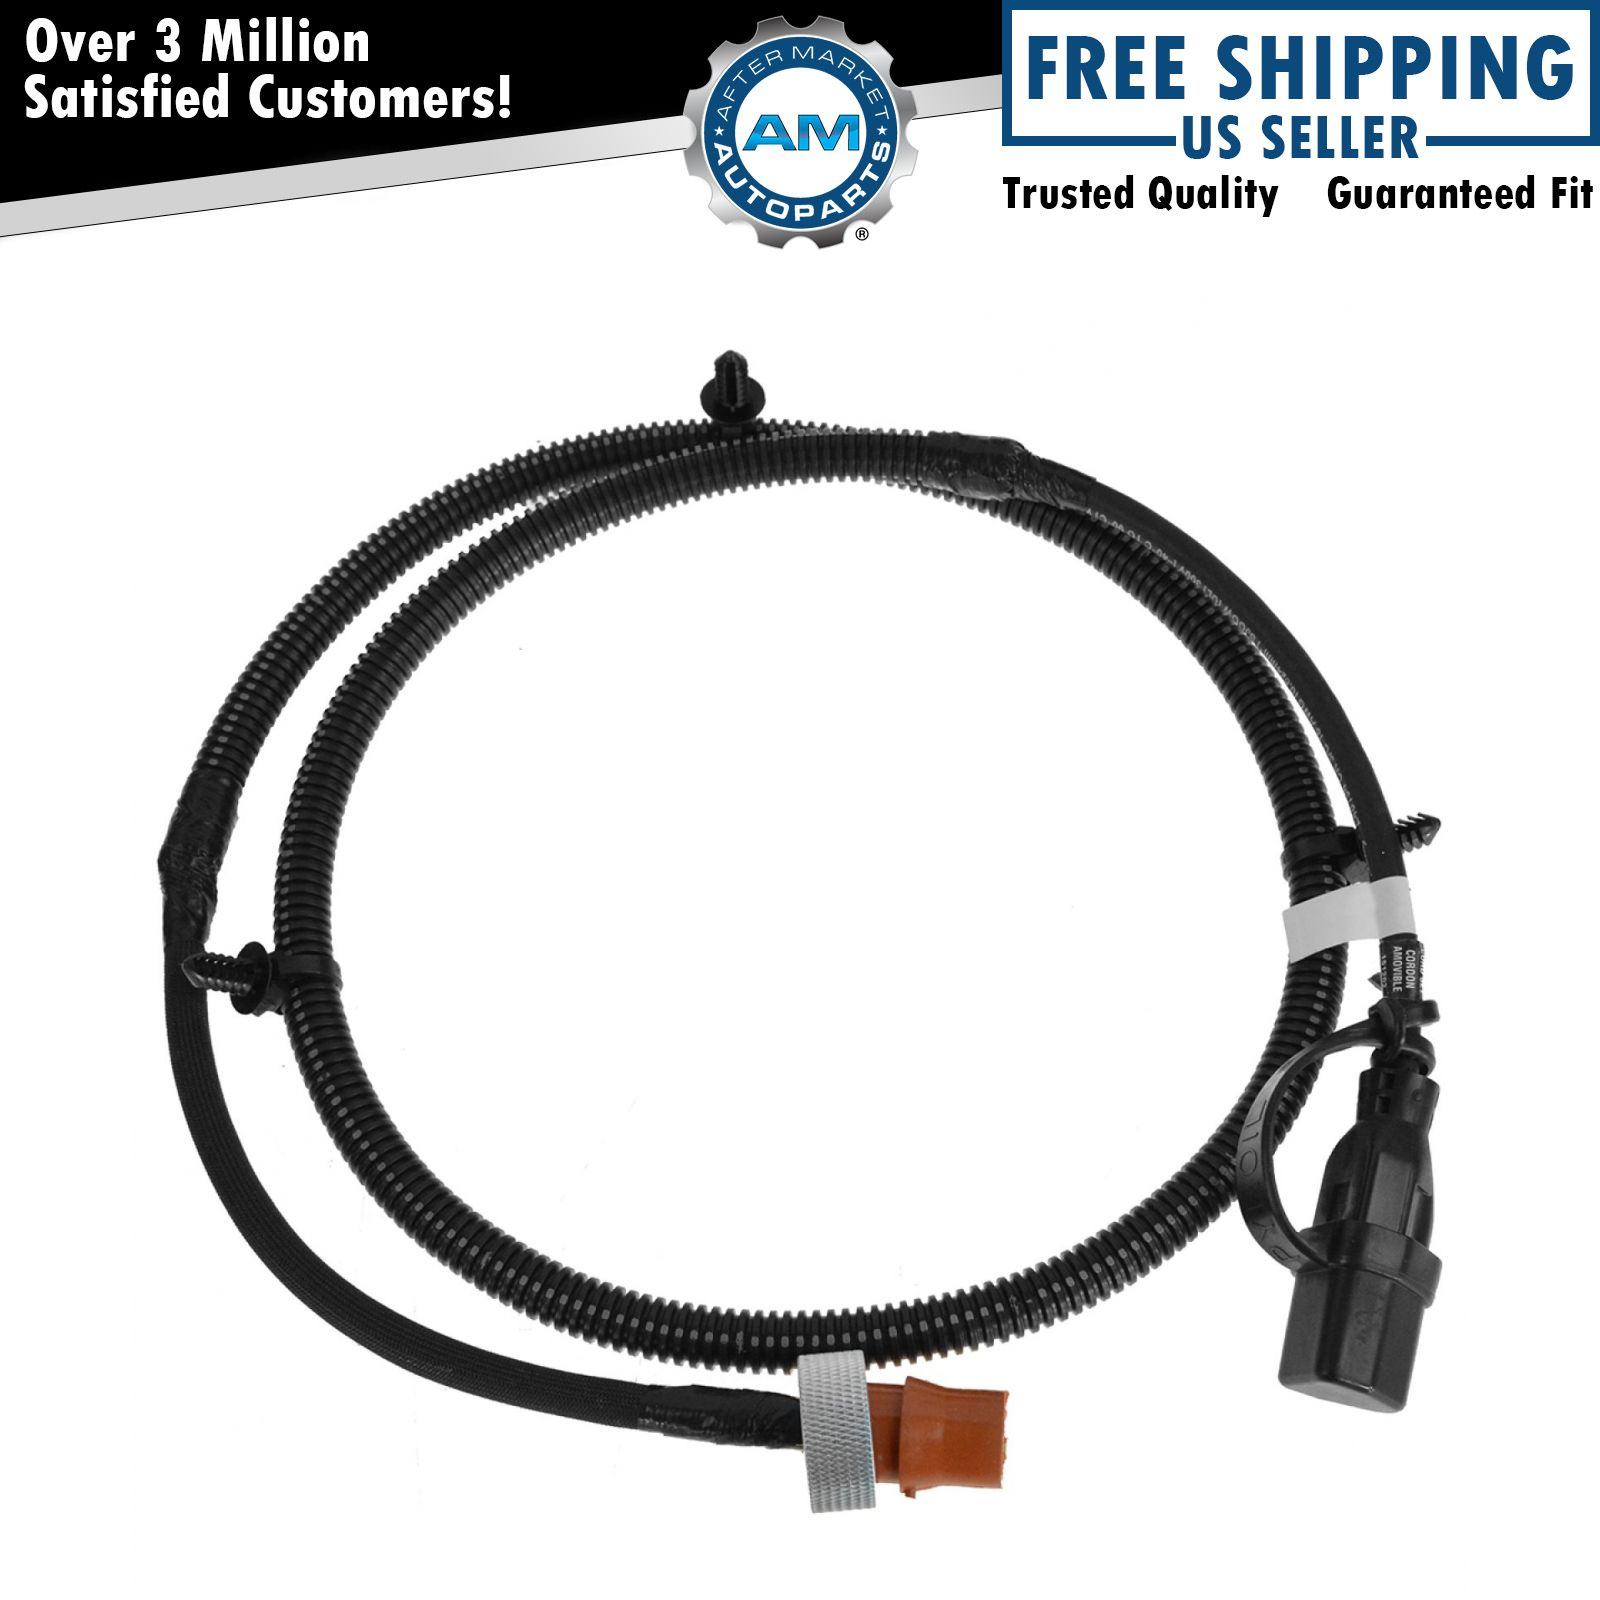 mopar engine block heater cord wire harness for ram  mopar engine block heater cord wire harness for 04 10 ram 2500 3500 diesel